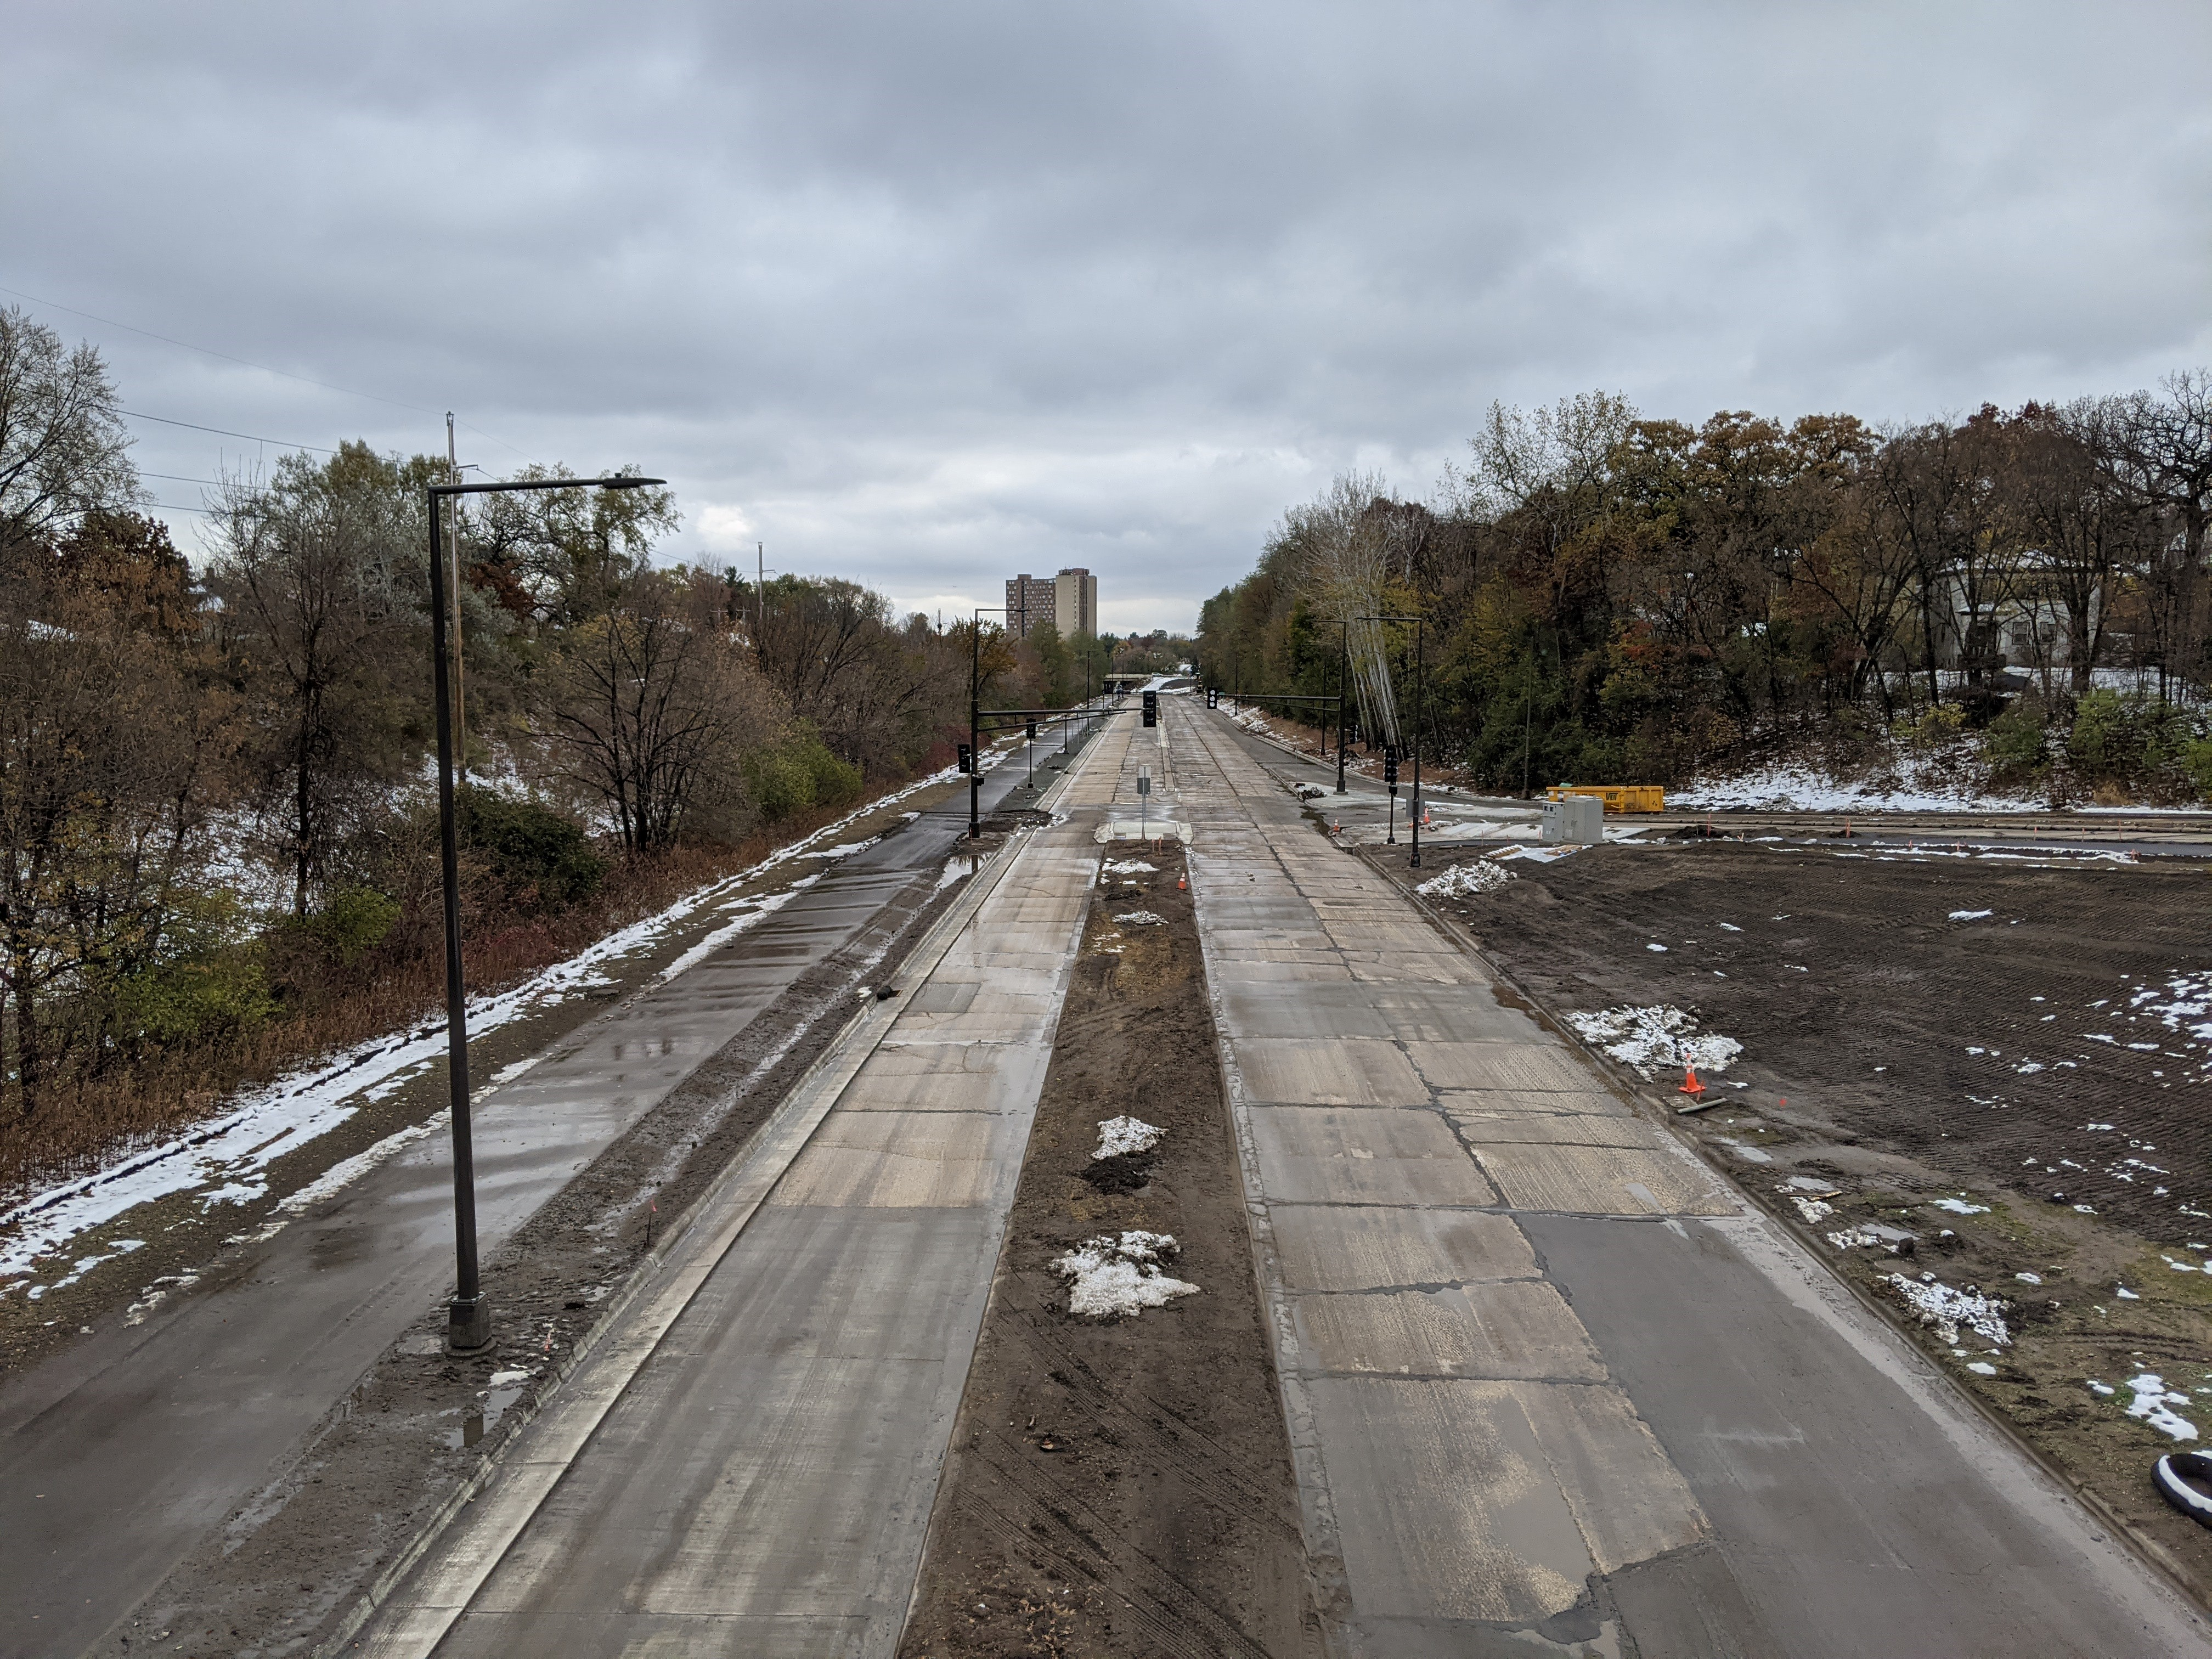 Ayd Mill Road construction photo showing the southbound view from the Grand Avenue overpass as of 10.26.20. Photo shows new trail on east side of Ayd Mill Road and new traffic and street lights.